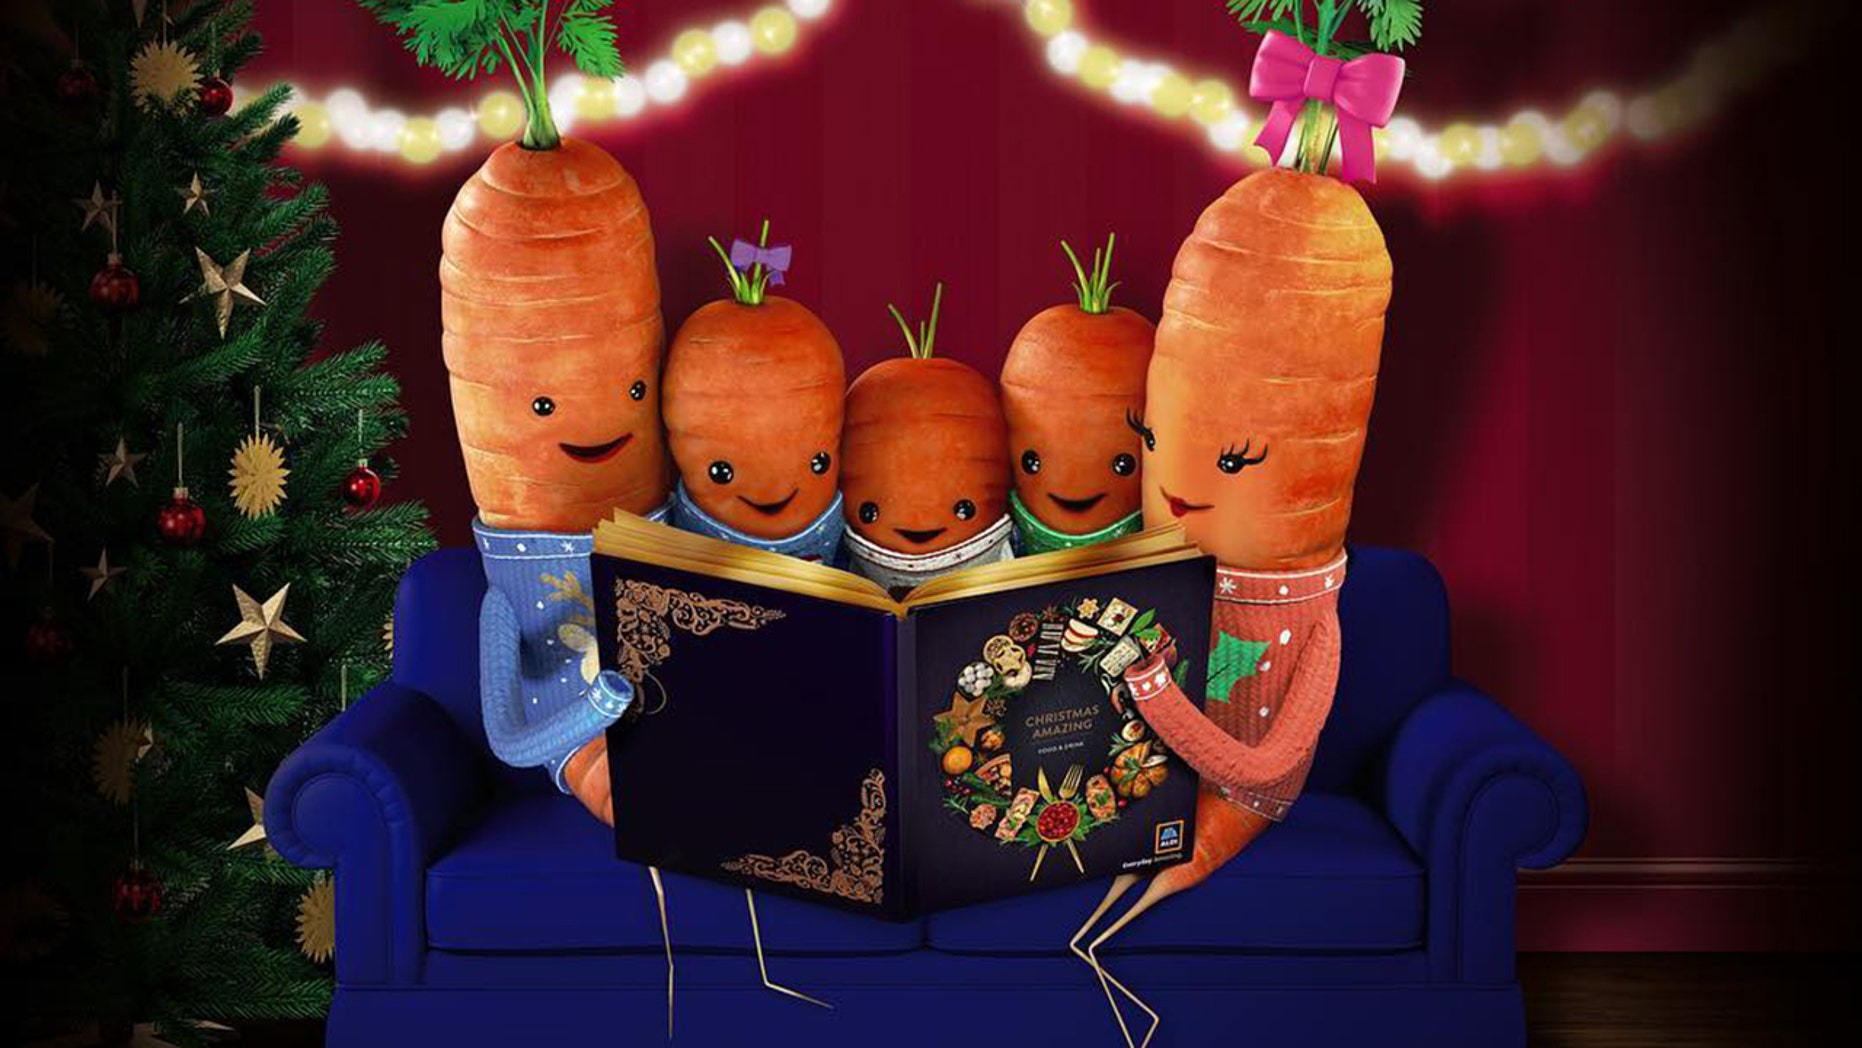 aldi s kevin the carrot toy sparks fights crowds worse. Black Bedroom Furniture Sets. Home Design Ideas